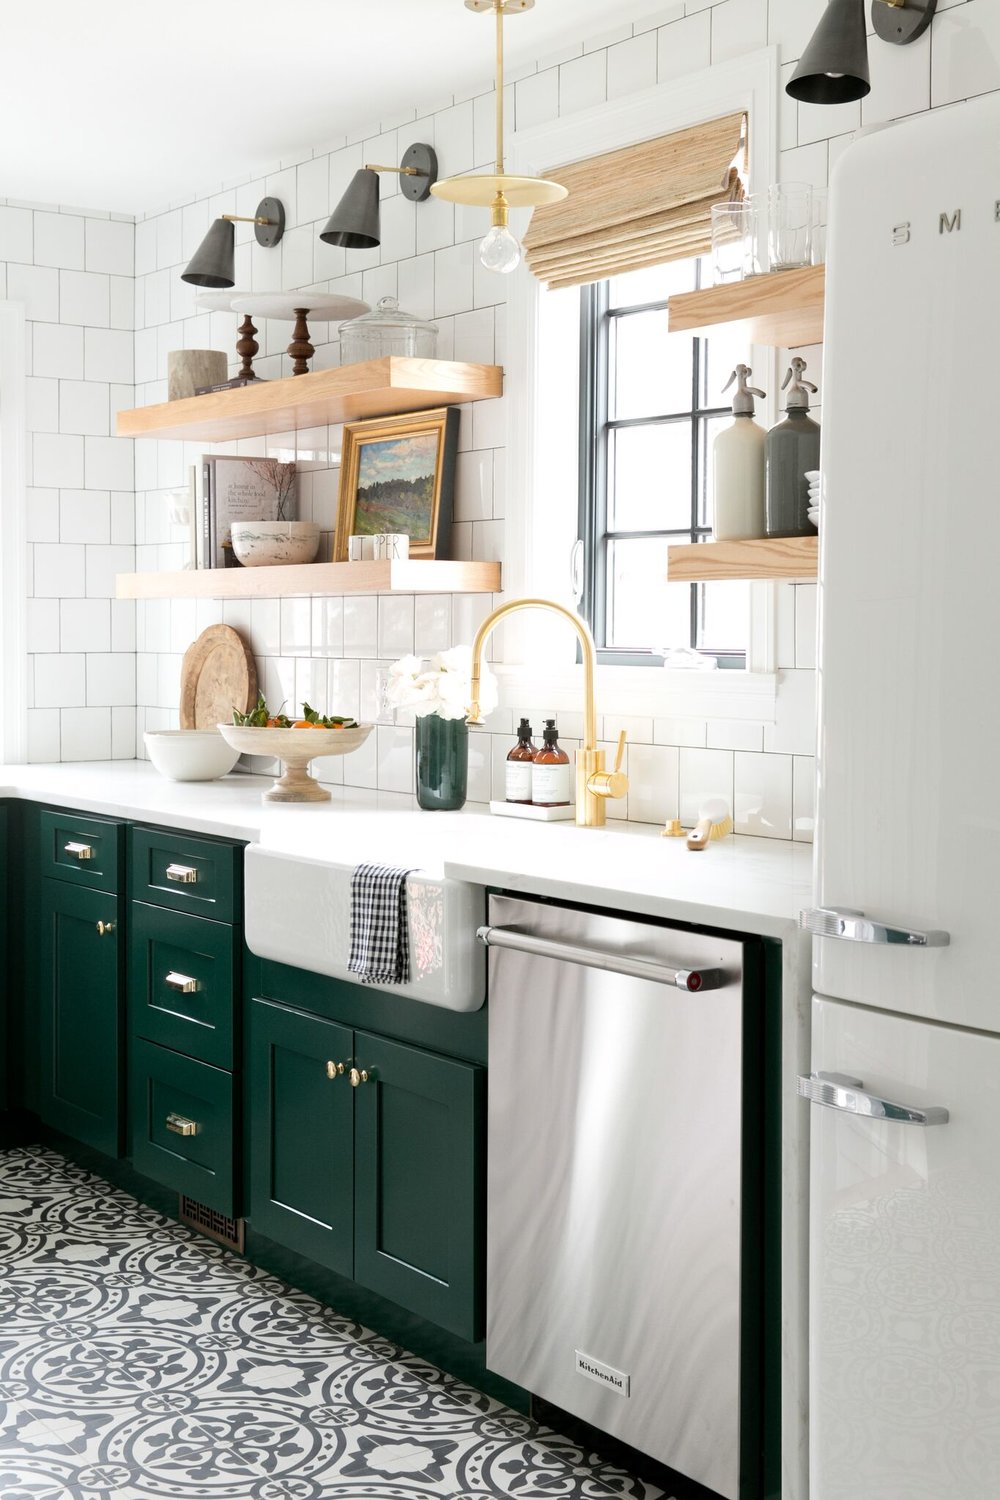 kitchen cabinet color sink rug our paint guide to colors whether you are going bold or classic the choose sets tone of entire room today we re sharing some favorite for